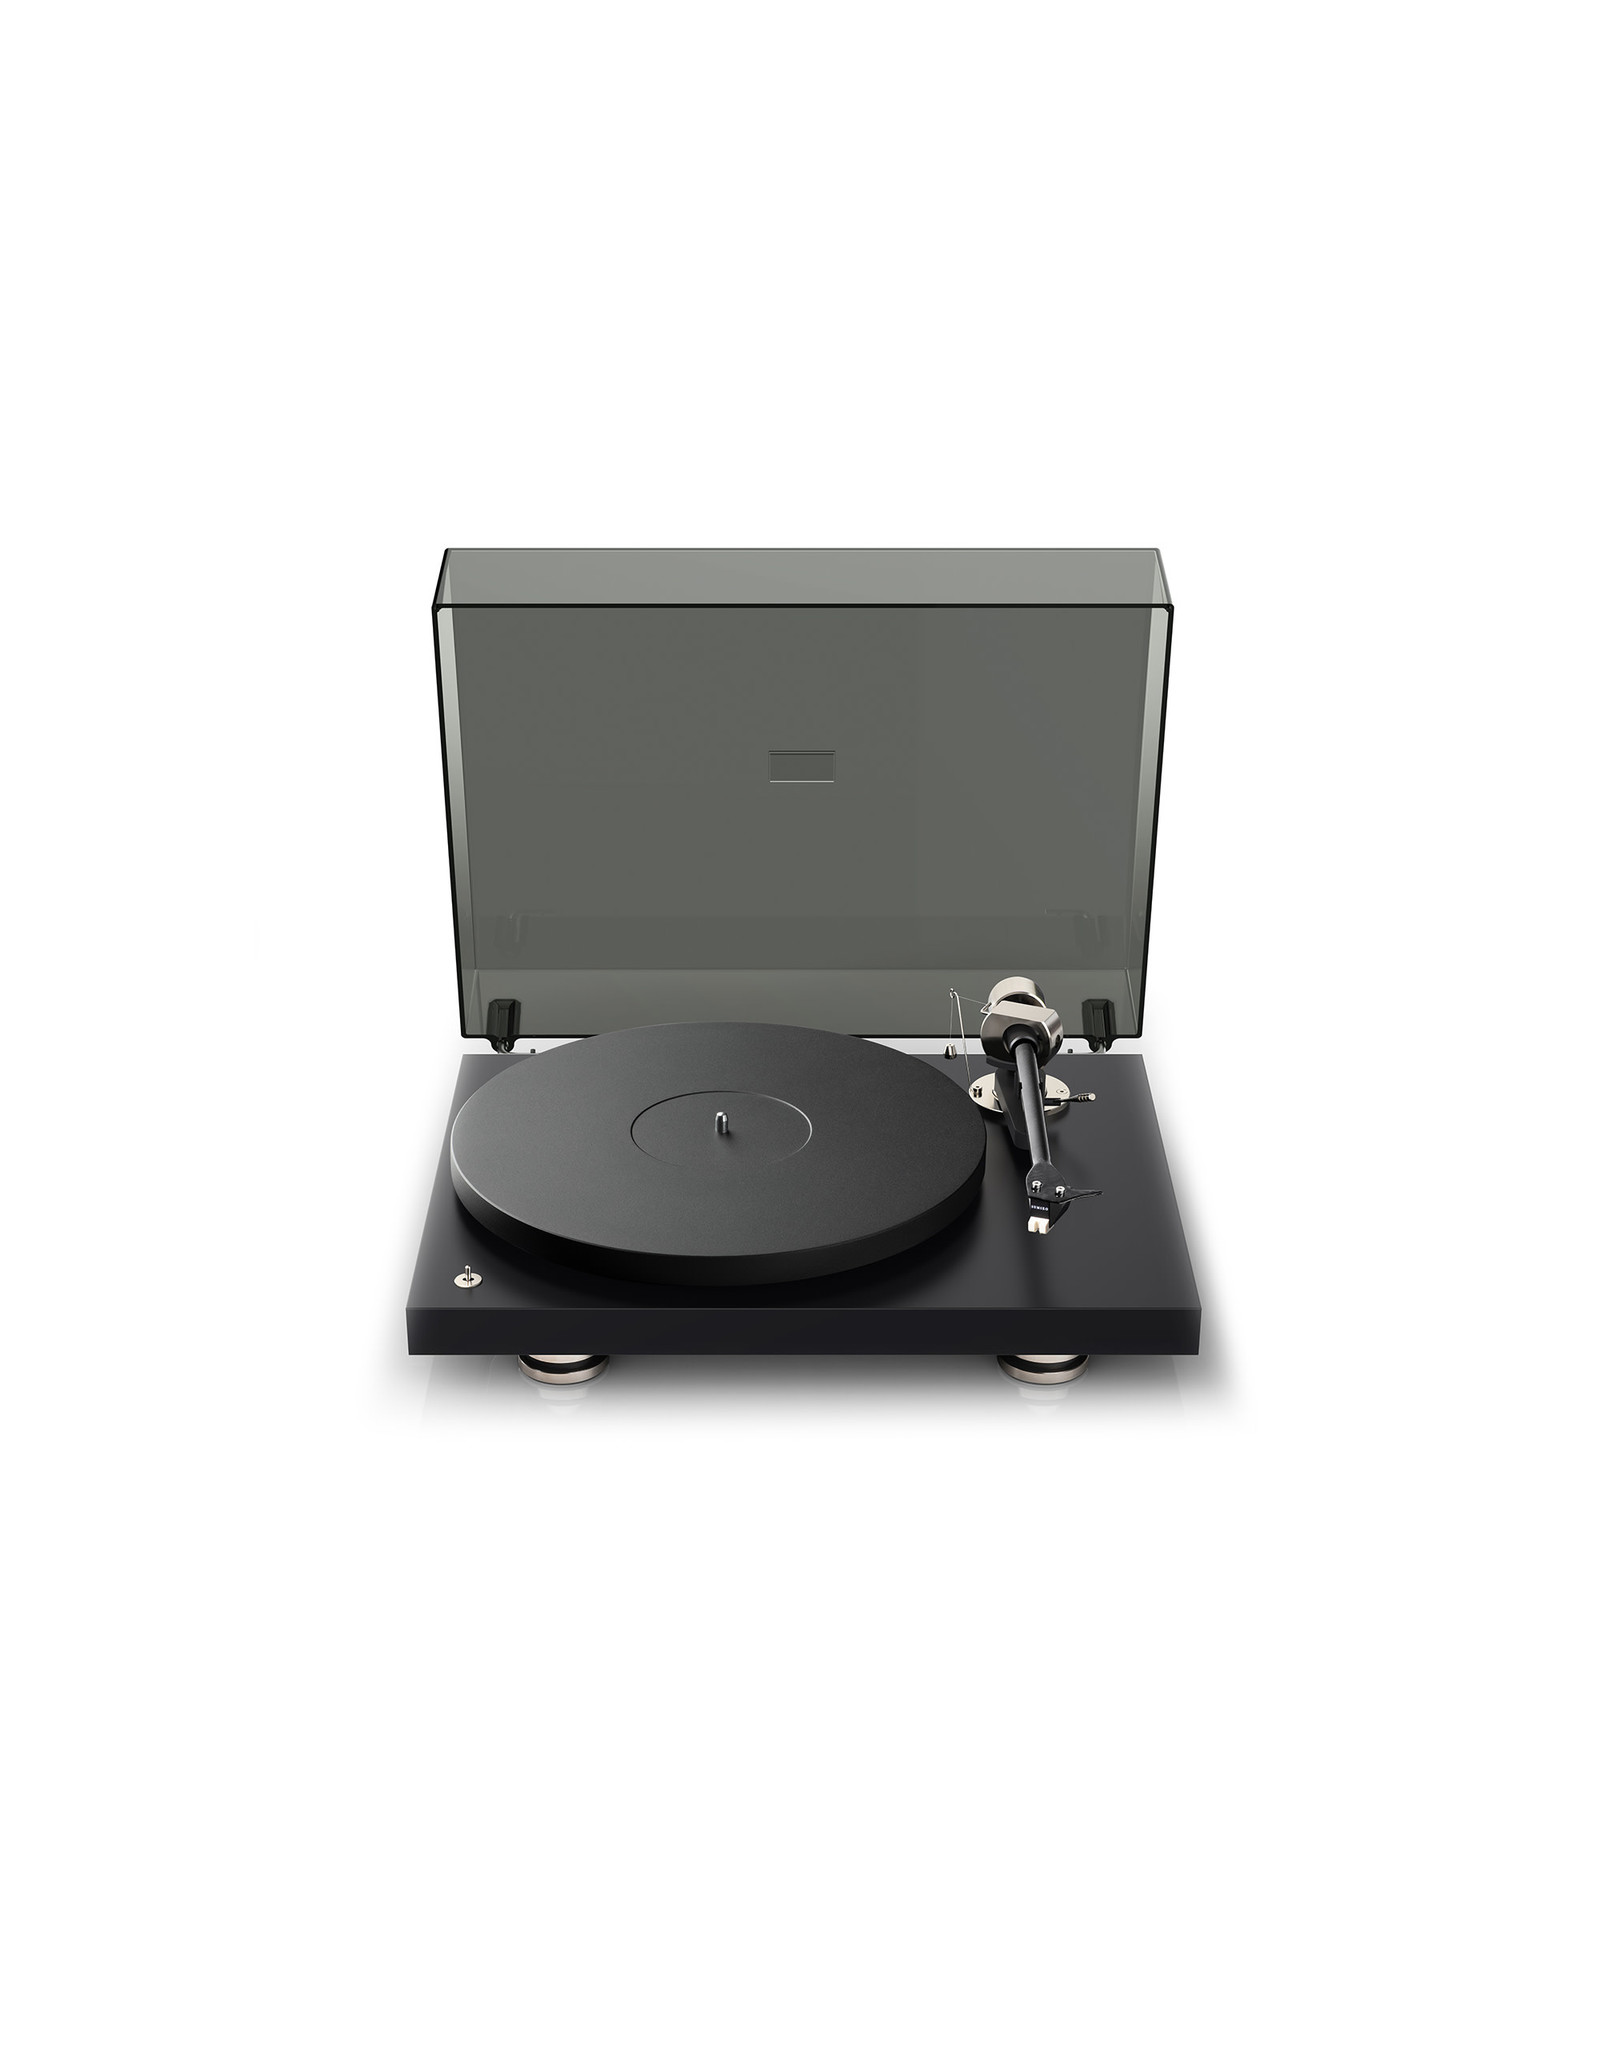 Pro-Ject Pro-Ject Debut PRO Turntable